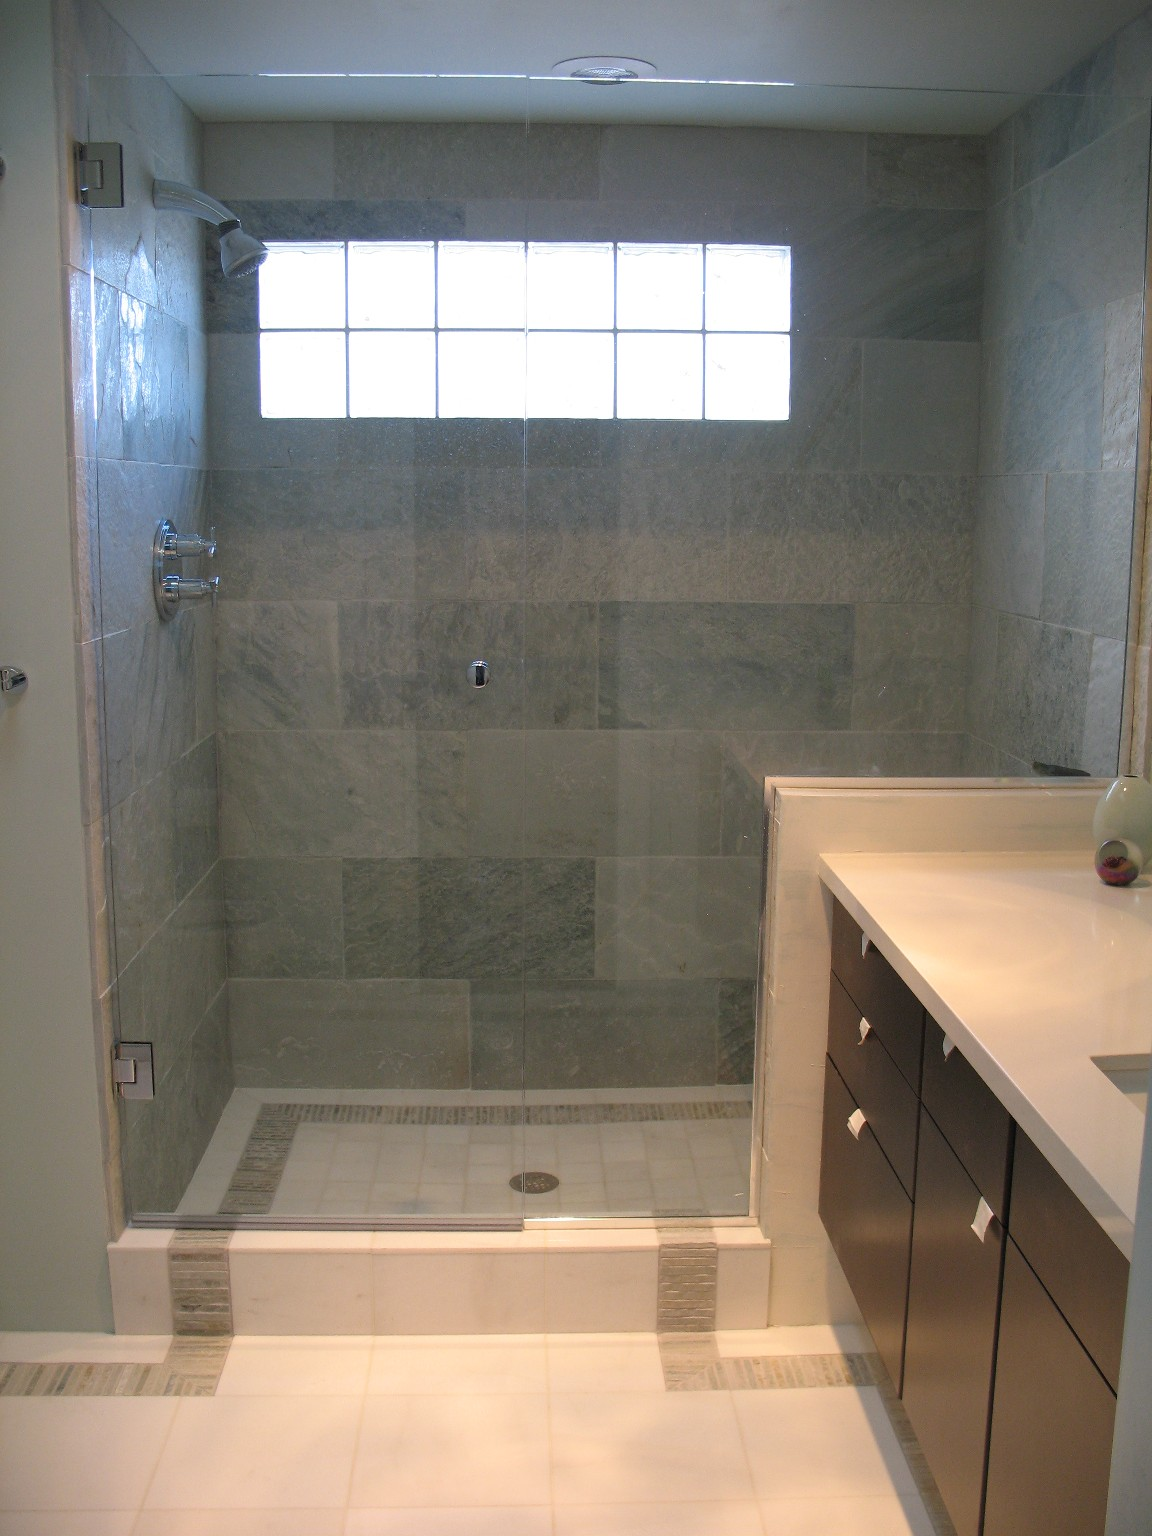 33 amazing ideas and pictures of modern bathroom shower tile ideas - Bathroom shower ideas ...